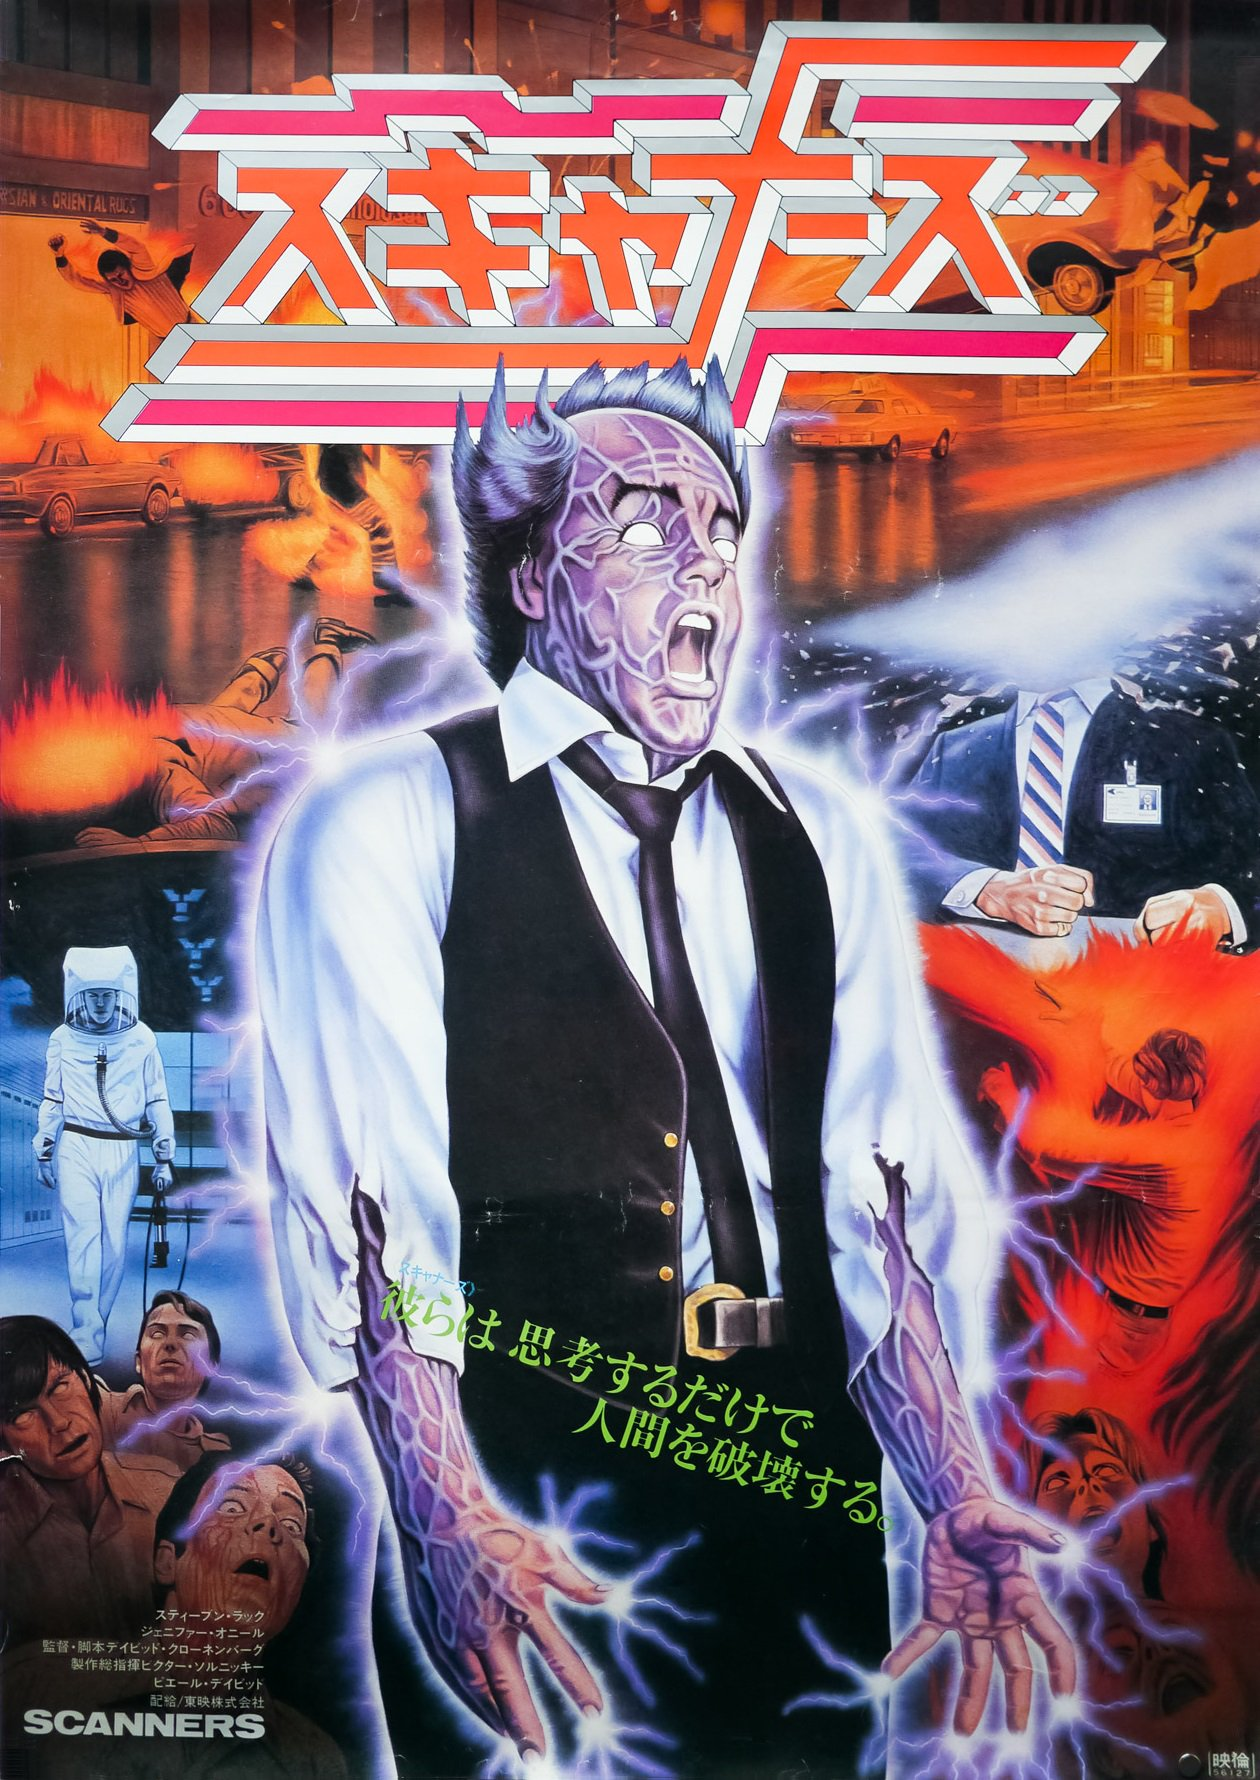 Happy birthday to David Cronenberg - SCANNERS - 1981 - Japanese release poster